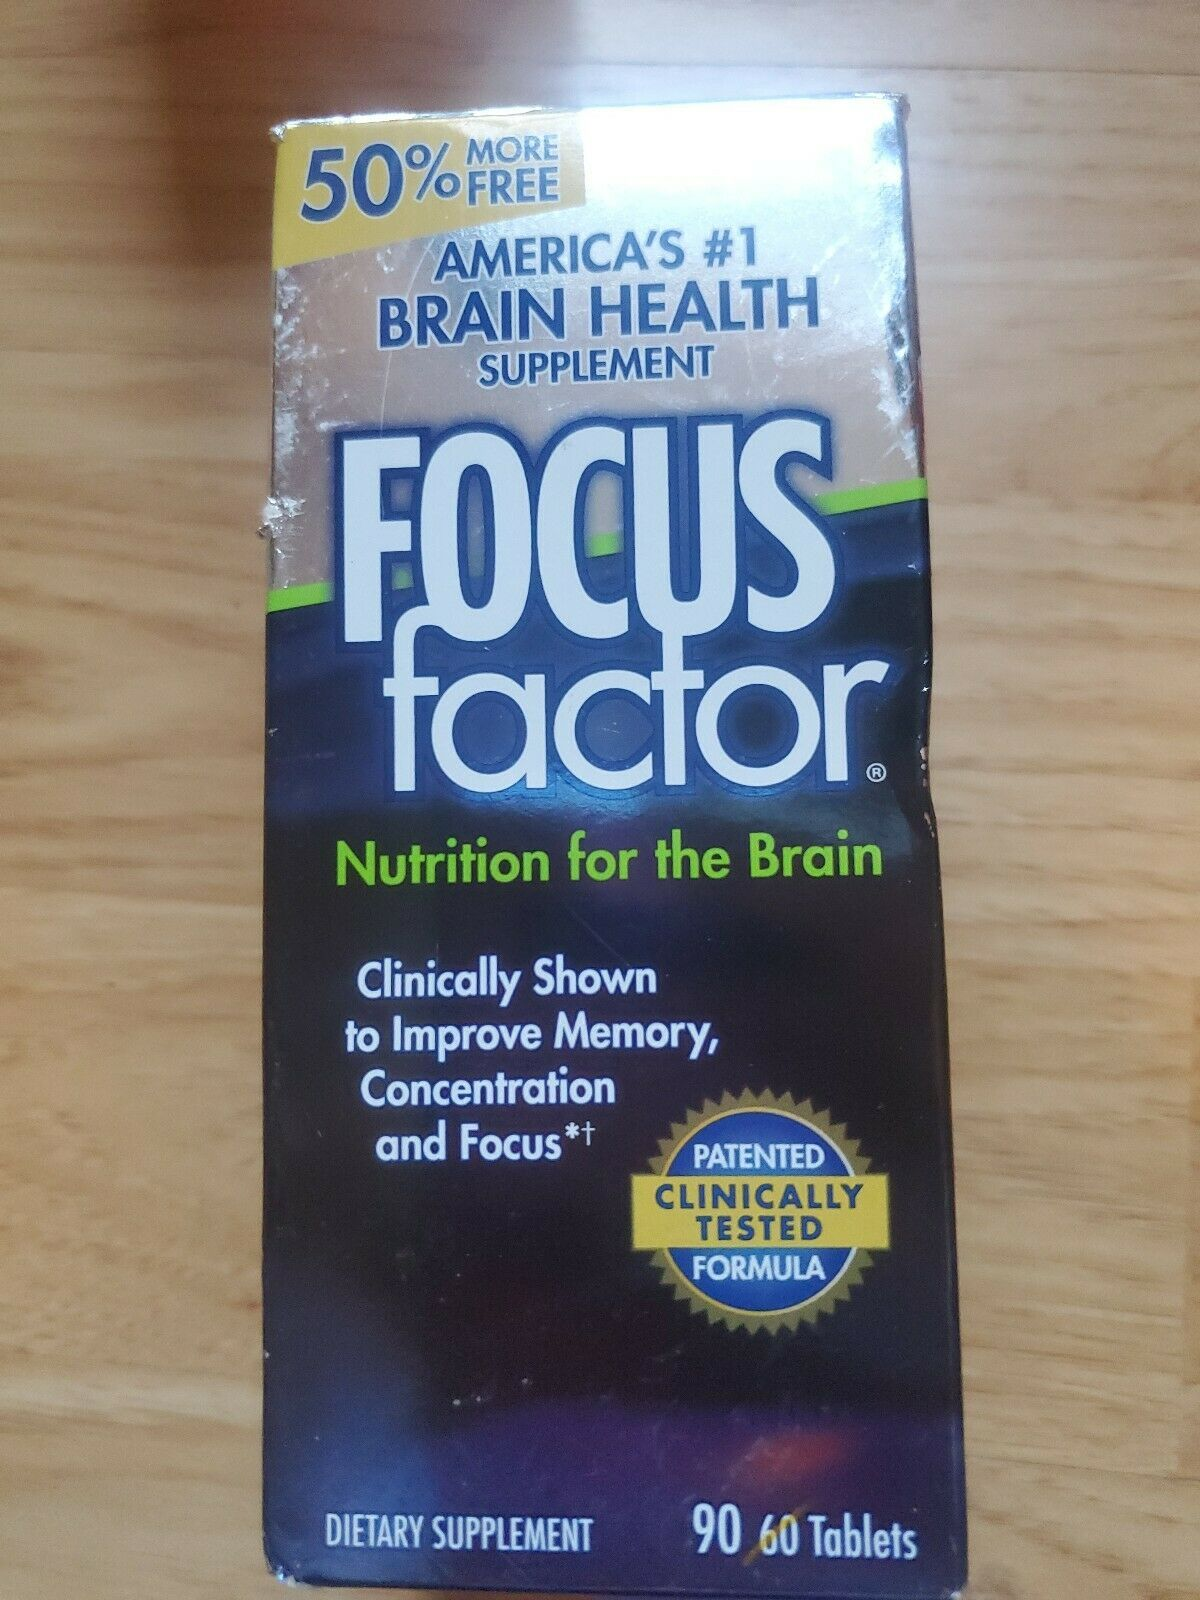 Pin By Drugsbank On Focus Factor Review Brain Health Supplements Nutrition Focus Factor